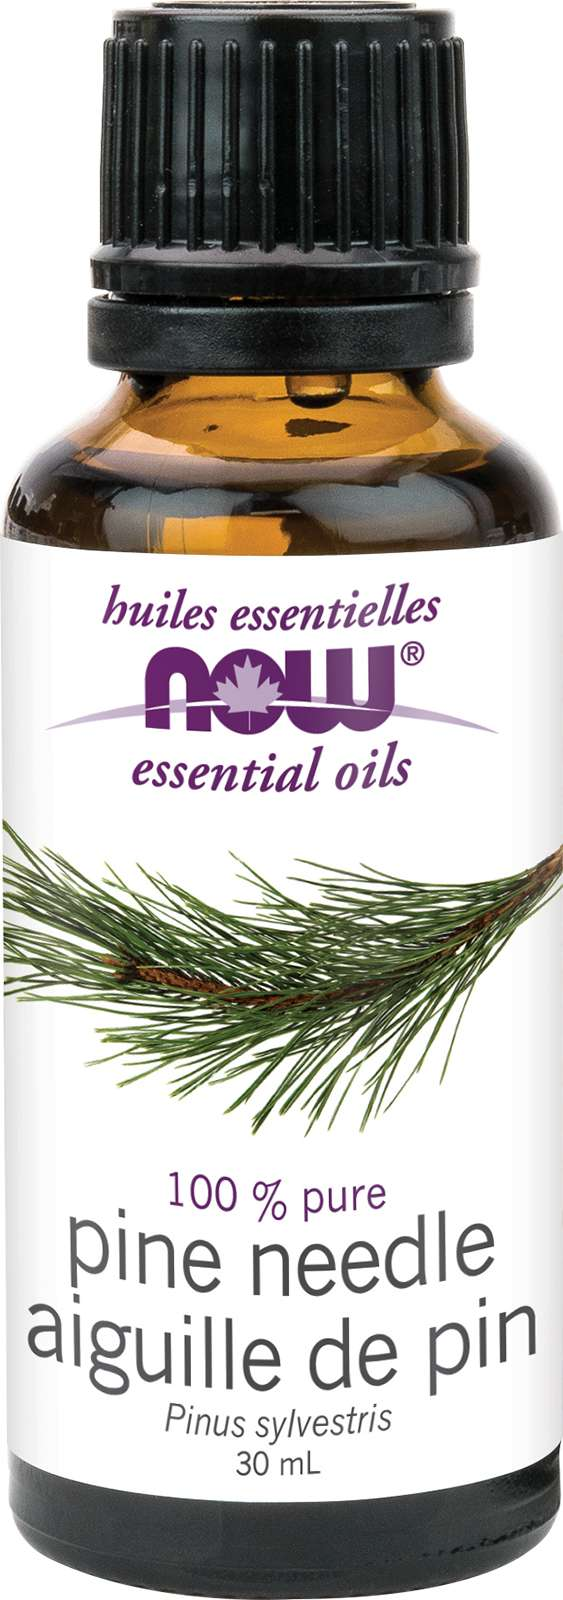 Pine Needle Oil (Pinus sylvestris) 30mL